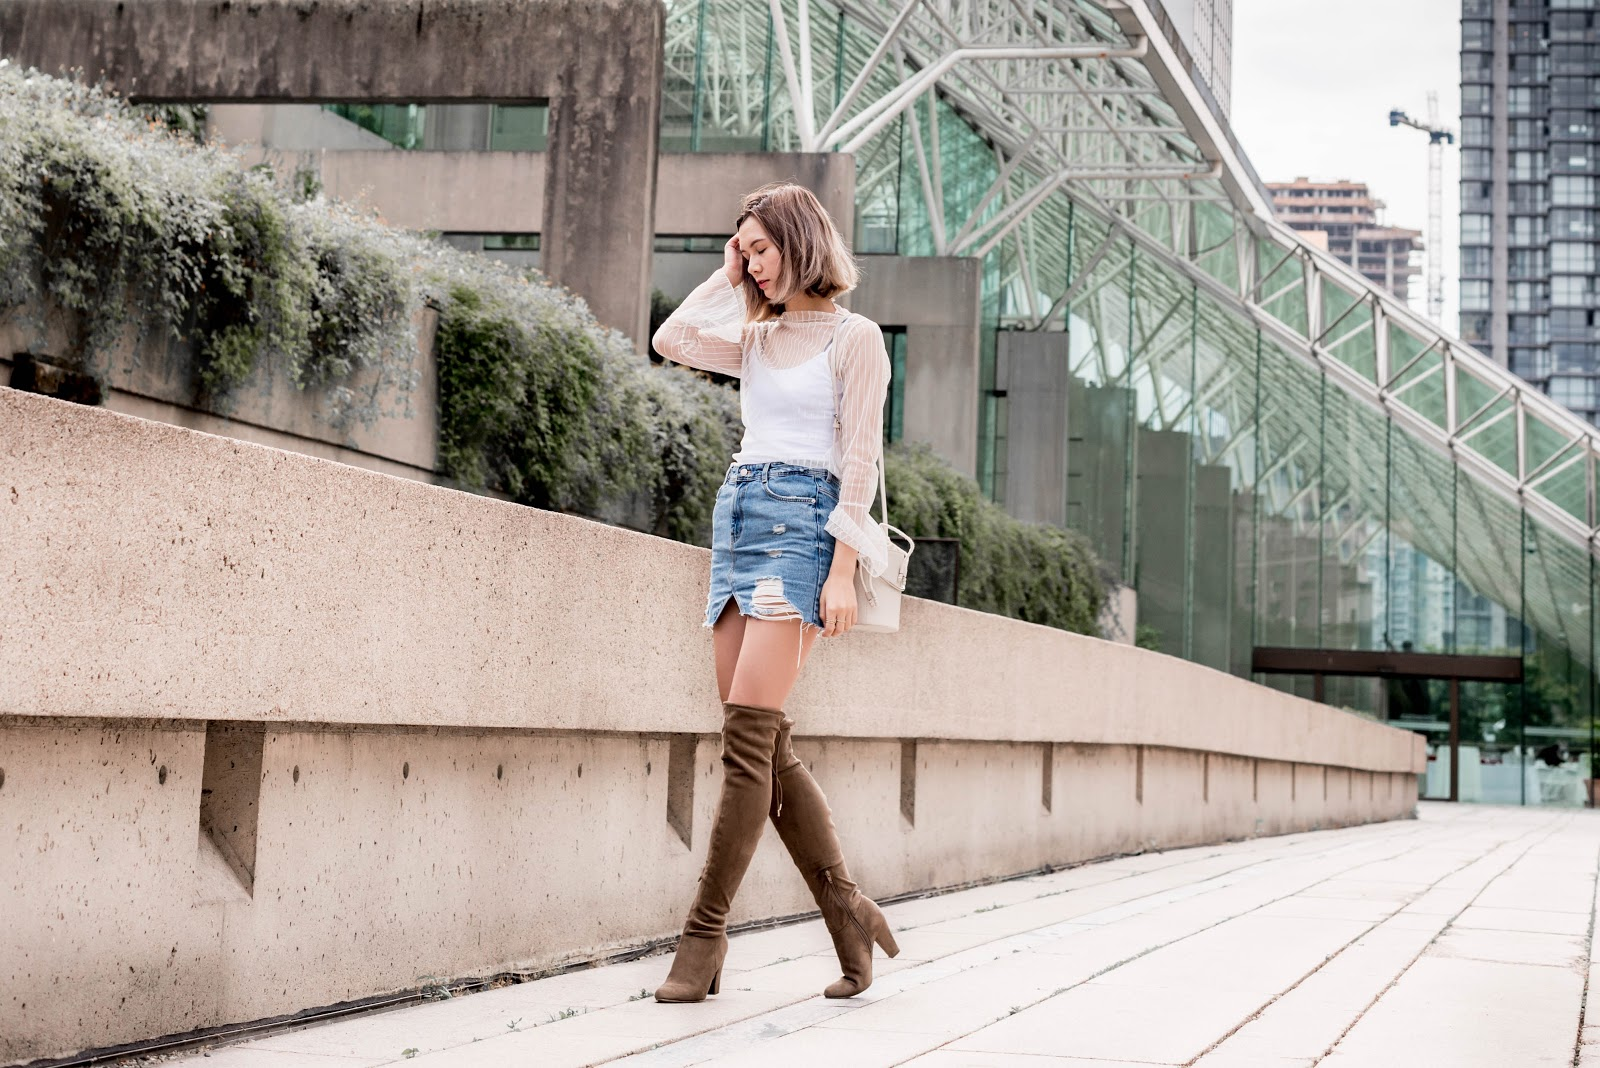 Oak and Fort, mesh top, denim skirt, bucket bag, stuart weitzman, over the knee boots, vancouver fashion, canadian fashion, fashion blogger,  fashion blog, zara